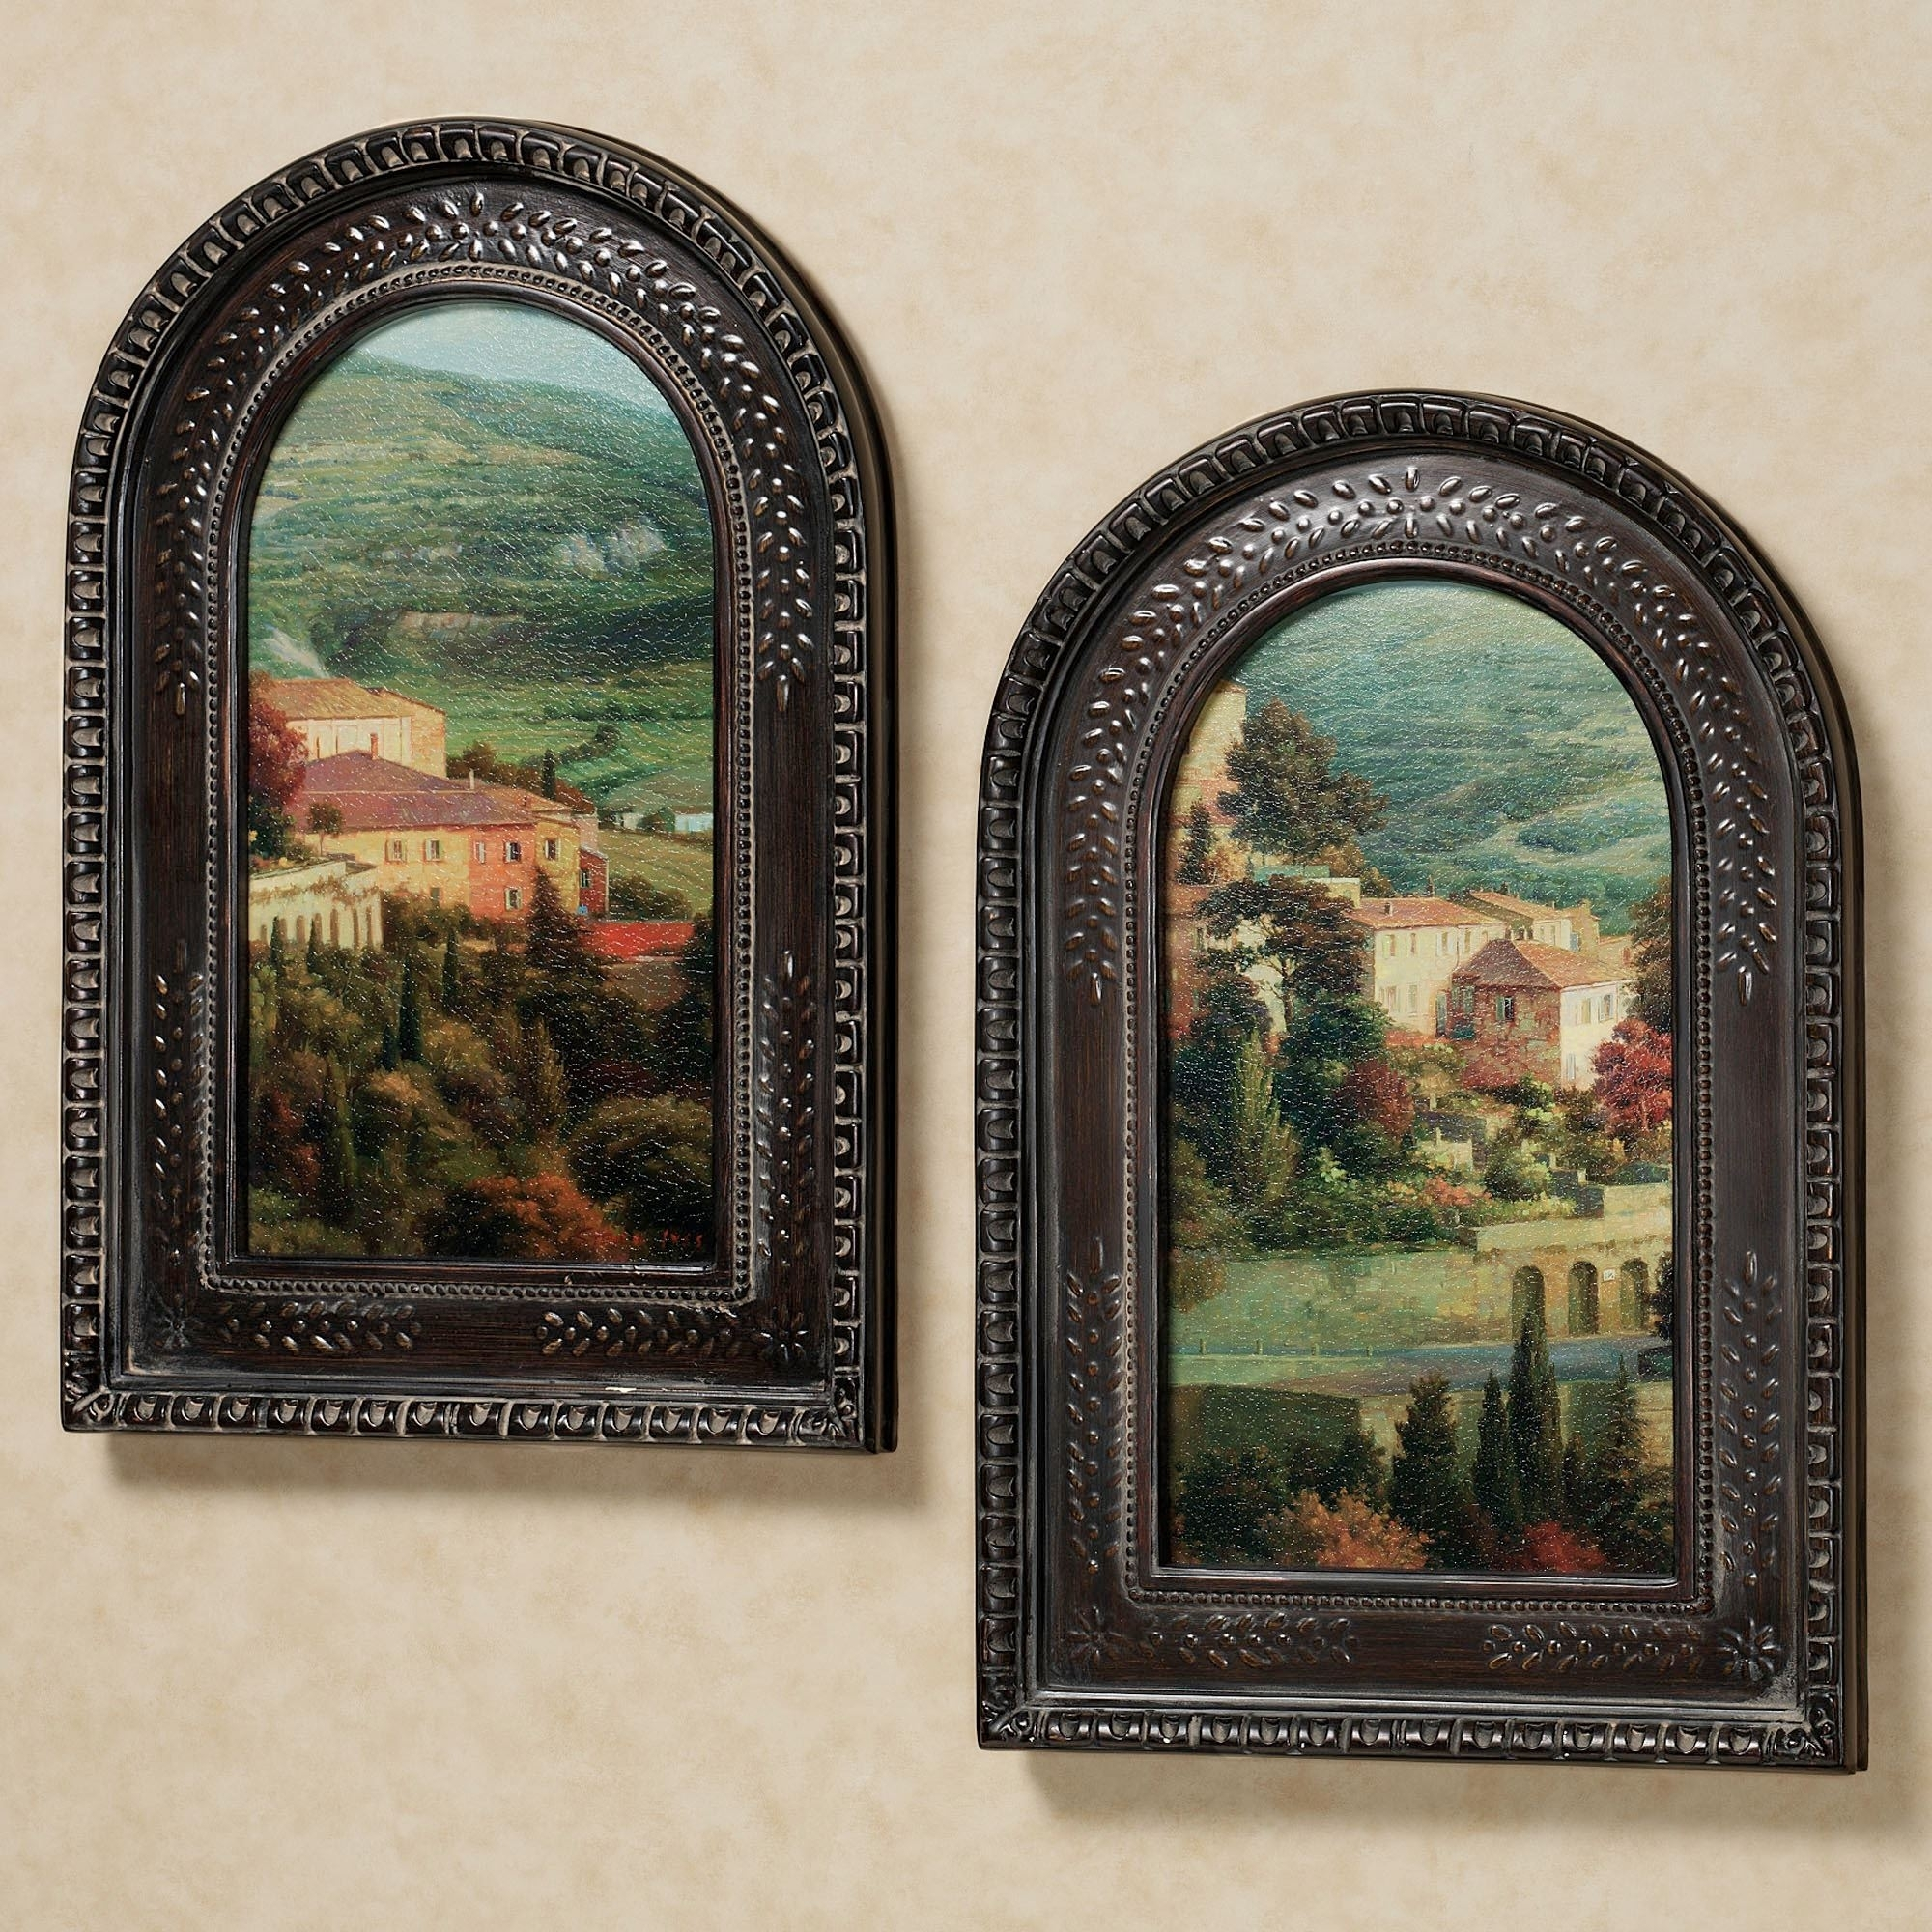 Framed Art Prints | Touch Of Class Pertaining To 2018 Antique Framed Art Prints (View 6 of 15)